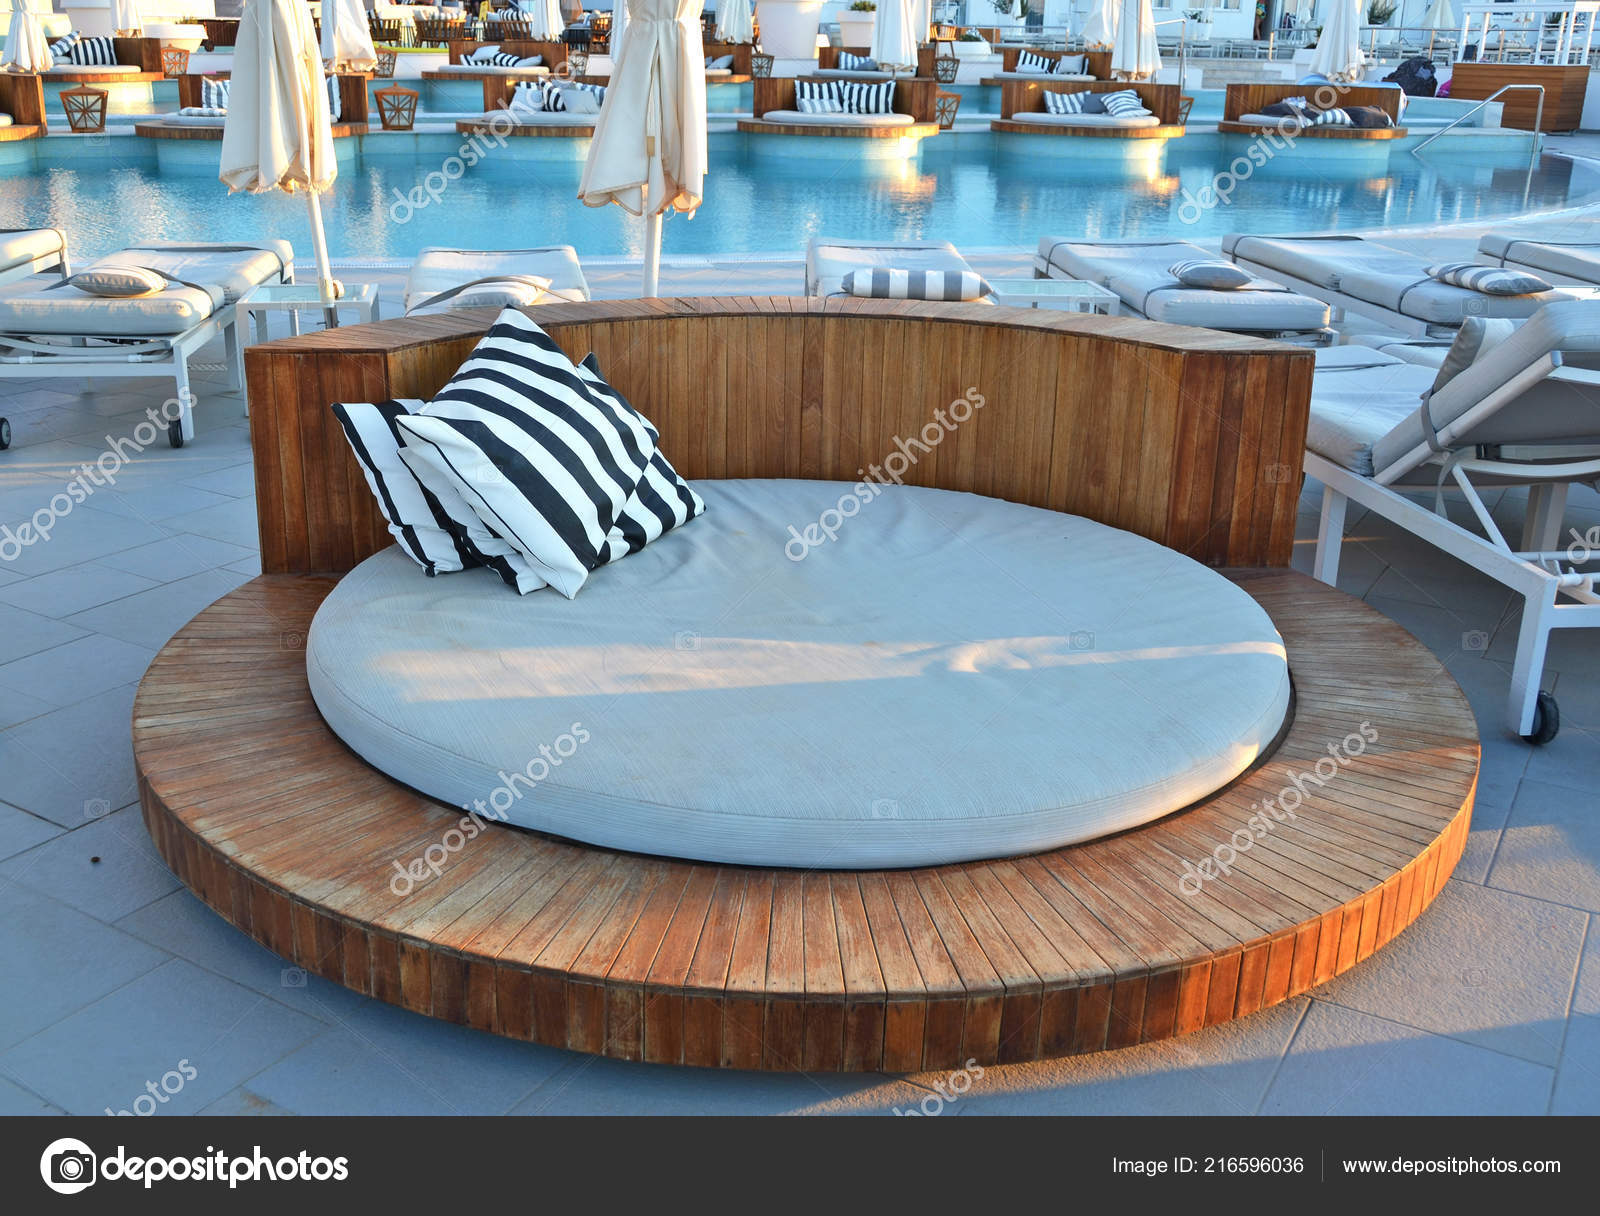 Trendige Pool Lounge Mit Chaise Lounges — Stockfoto ...